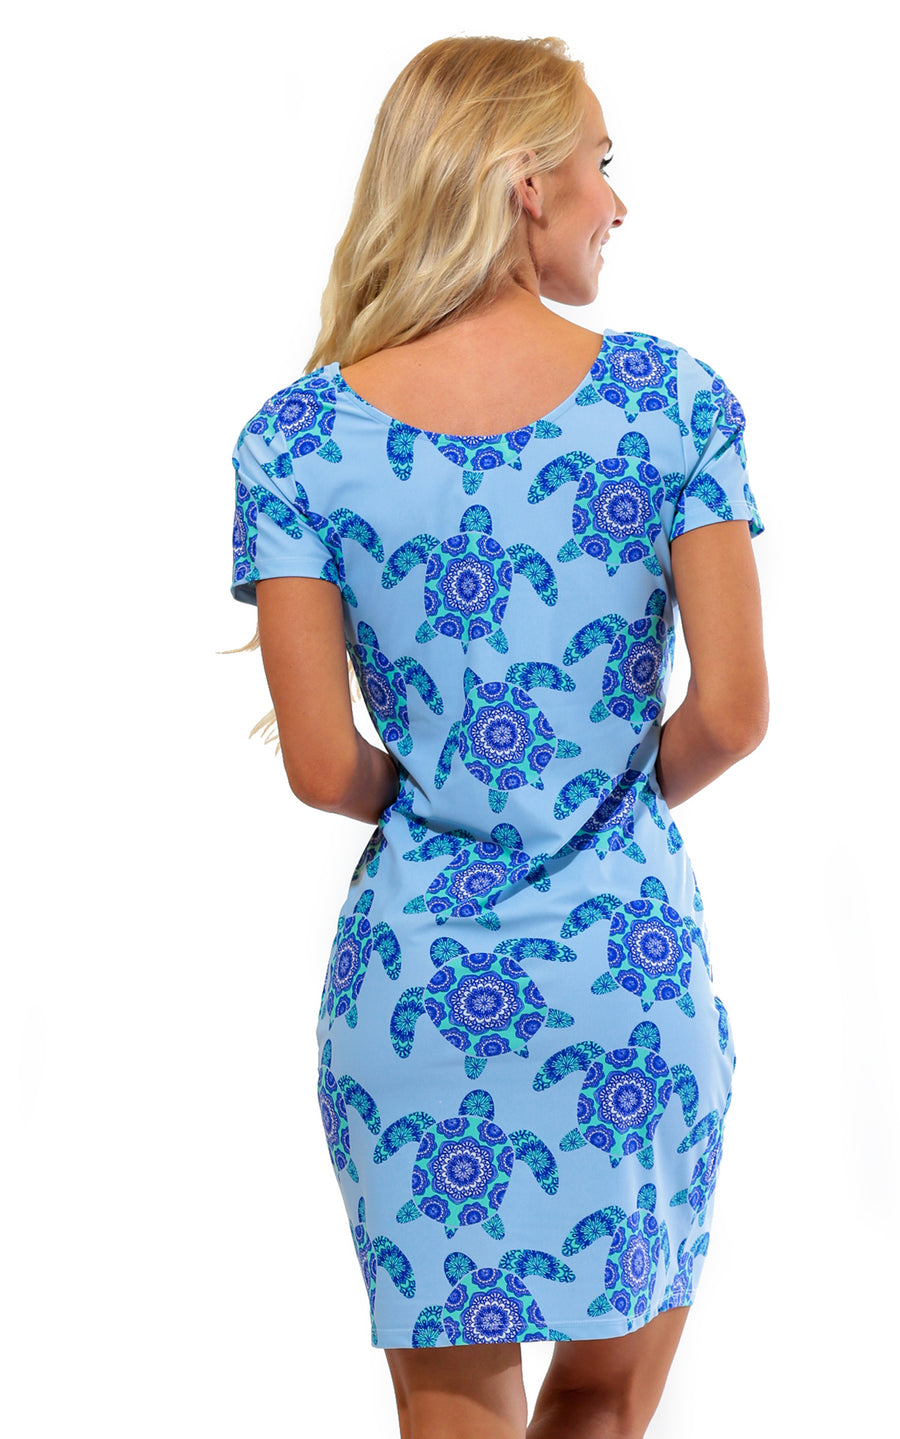 All For Color-Mandala Turtle Cove Road Short Sleeve Scoop Neck Dress  - FINAL SALE-Dresses